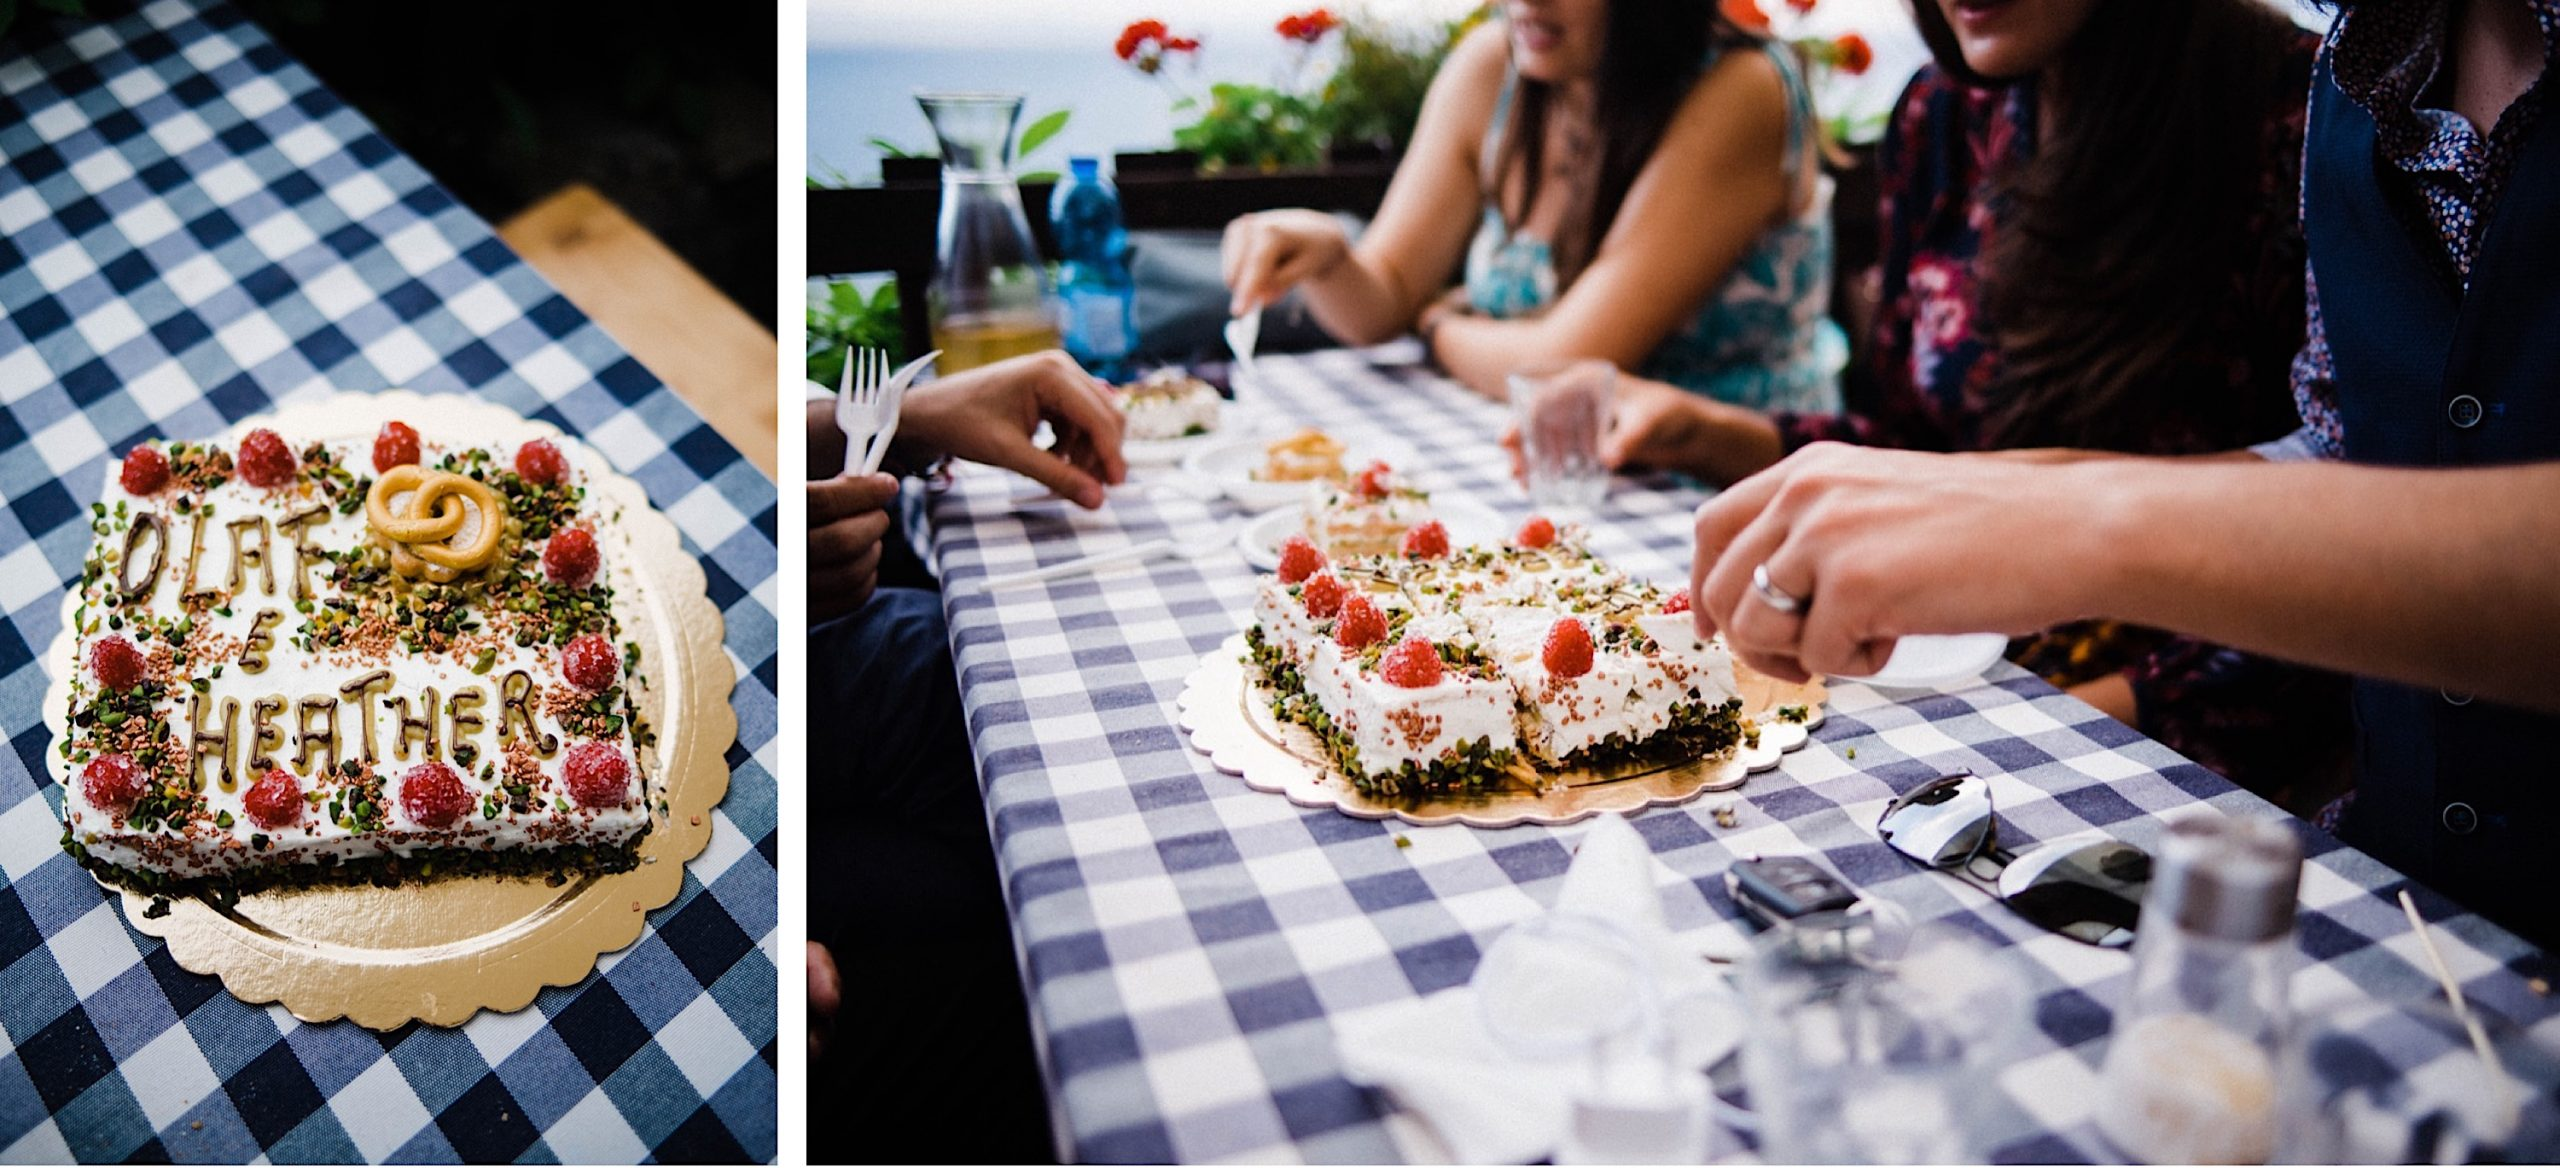 Two photos of a wedding cake, in Italy, with the bride & groom's name in icing. The cake has raspberries and pistacchios, and in the second photo, the groom is handing out pieces to the 8 guests.